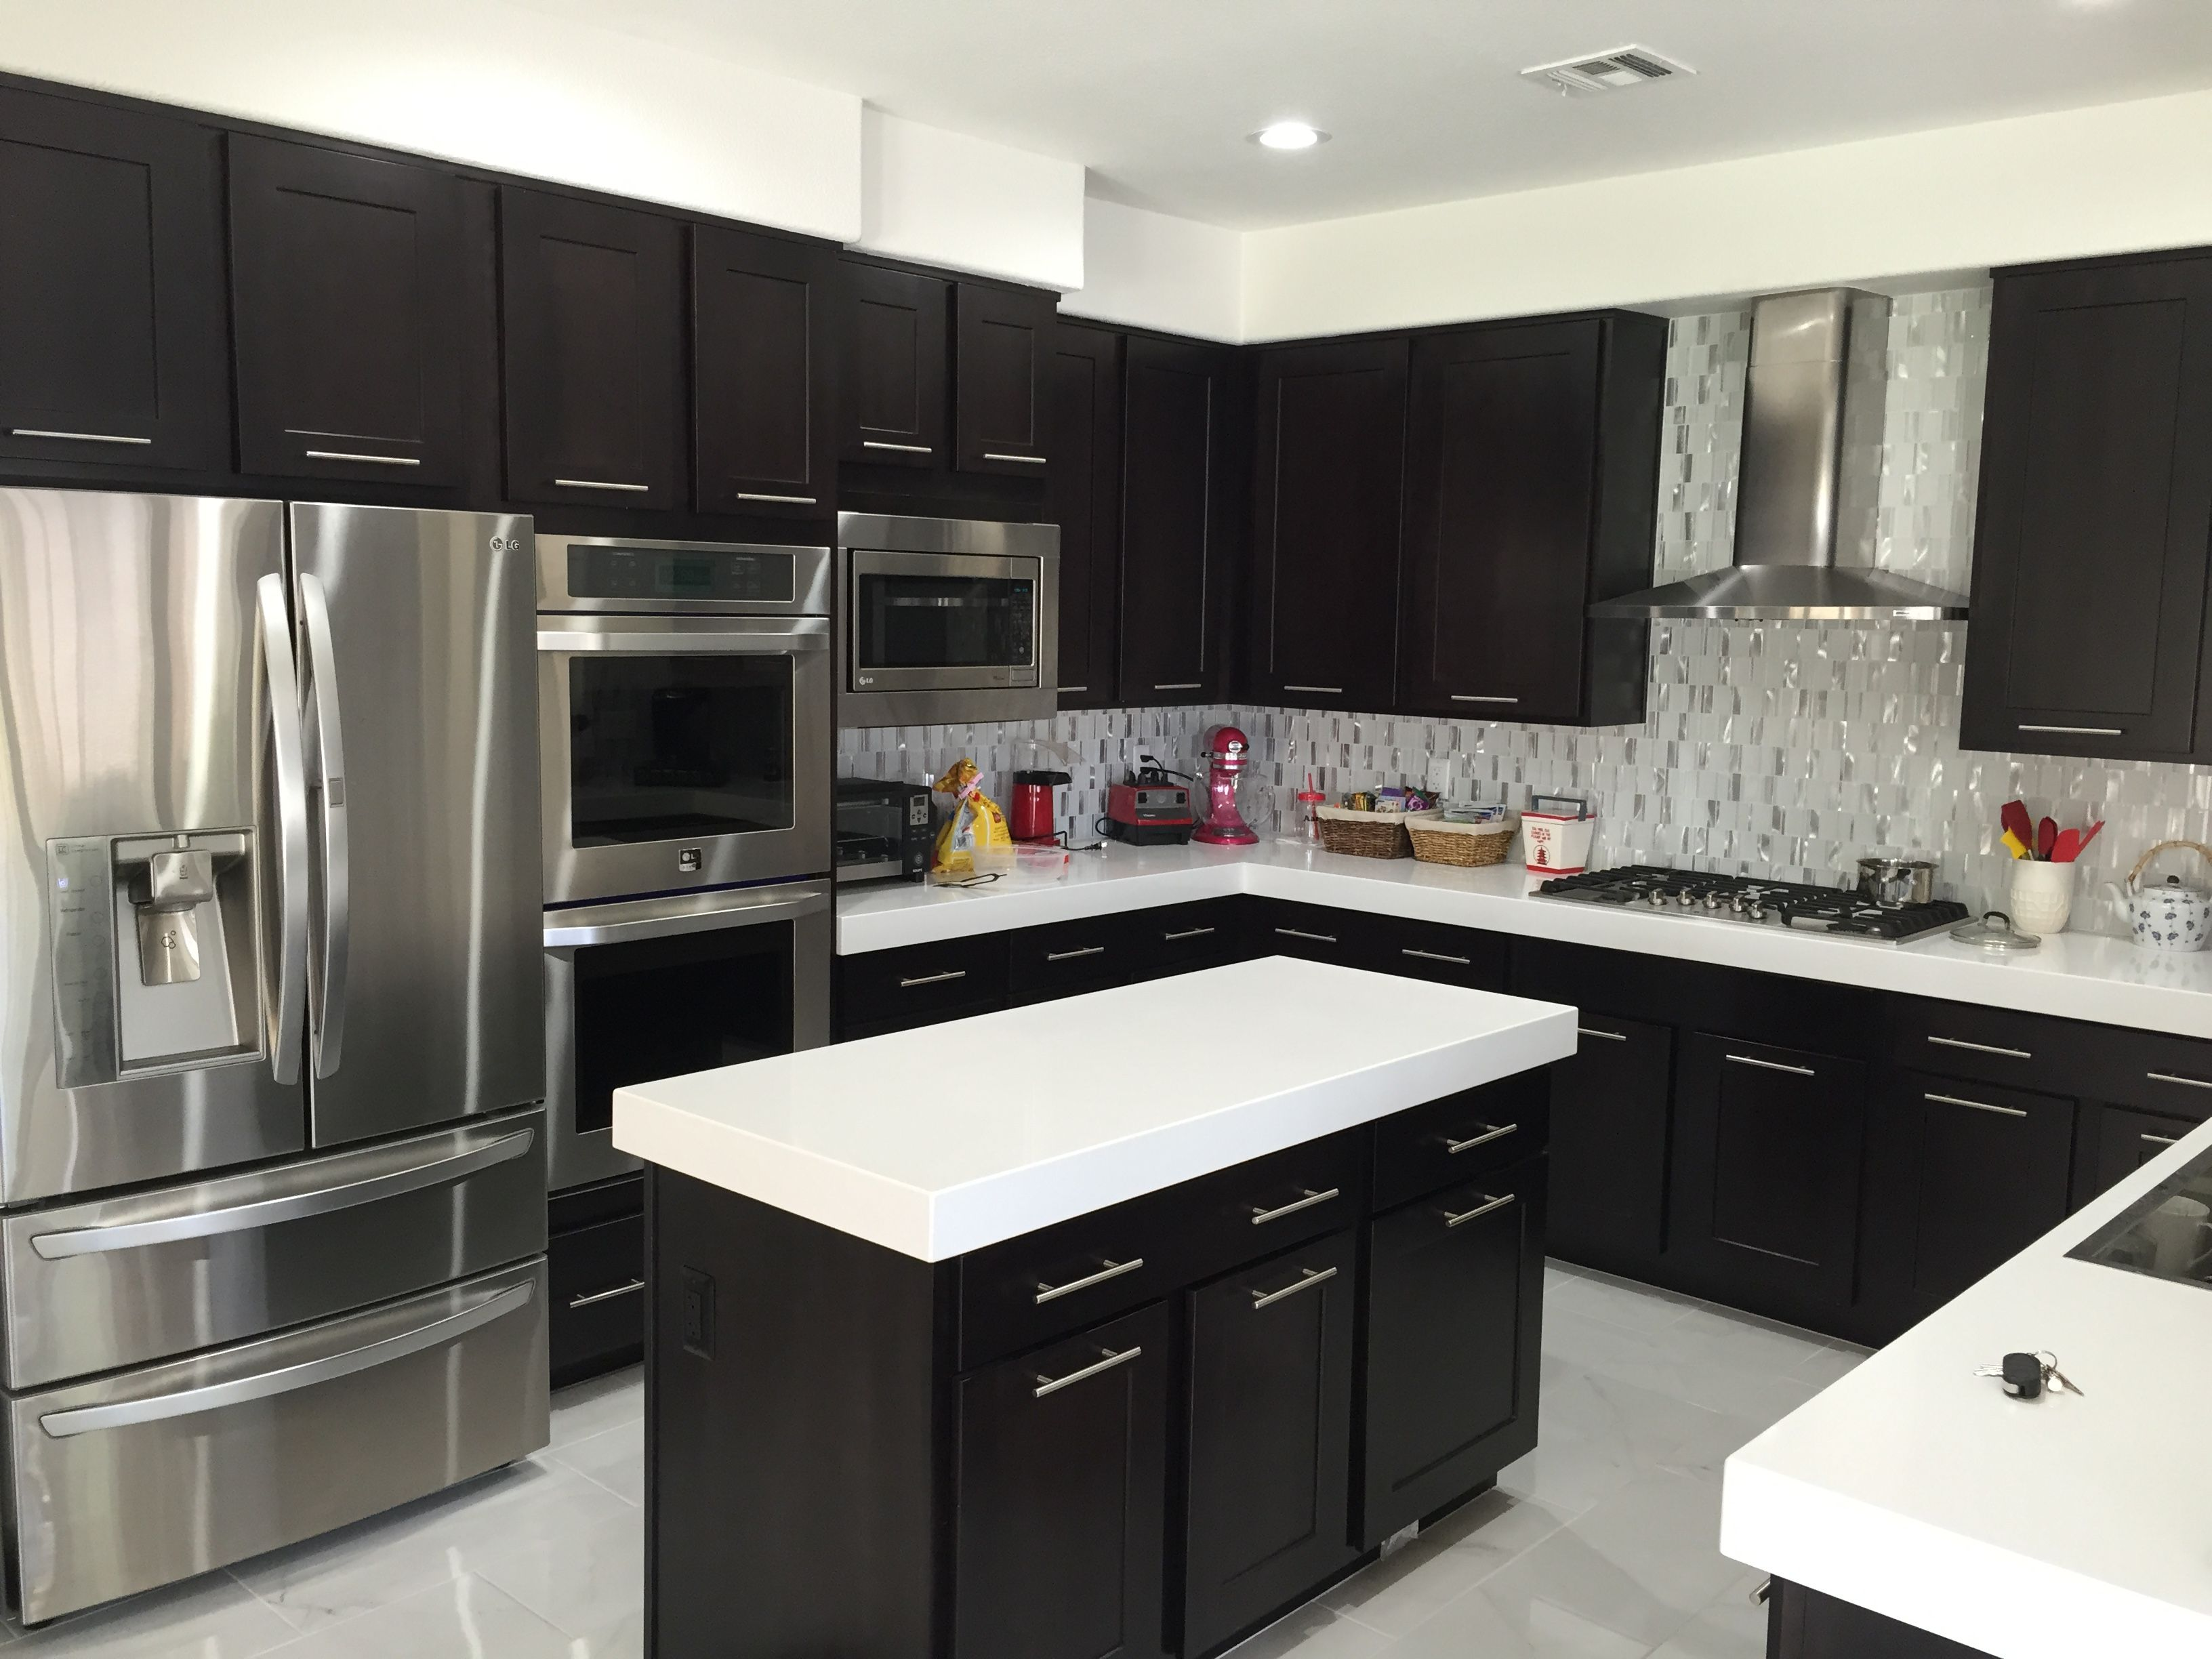 Striking Cabinetry Design And Countertops By Knippconstruction Black Kitchen Countertops Black Kitchen Cabinets Black Kitchens